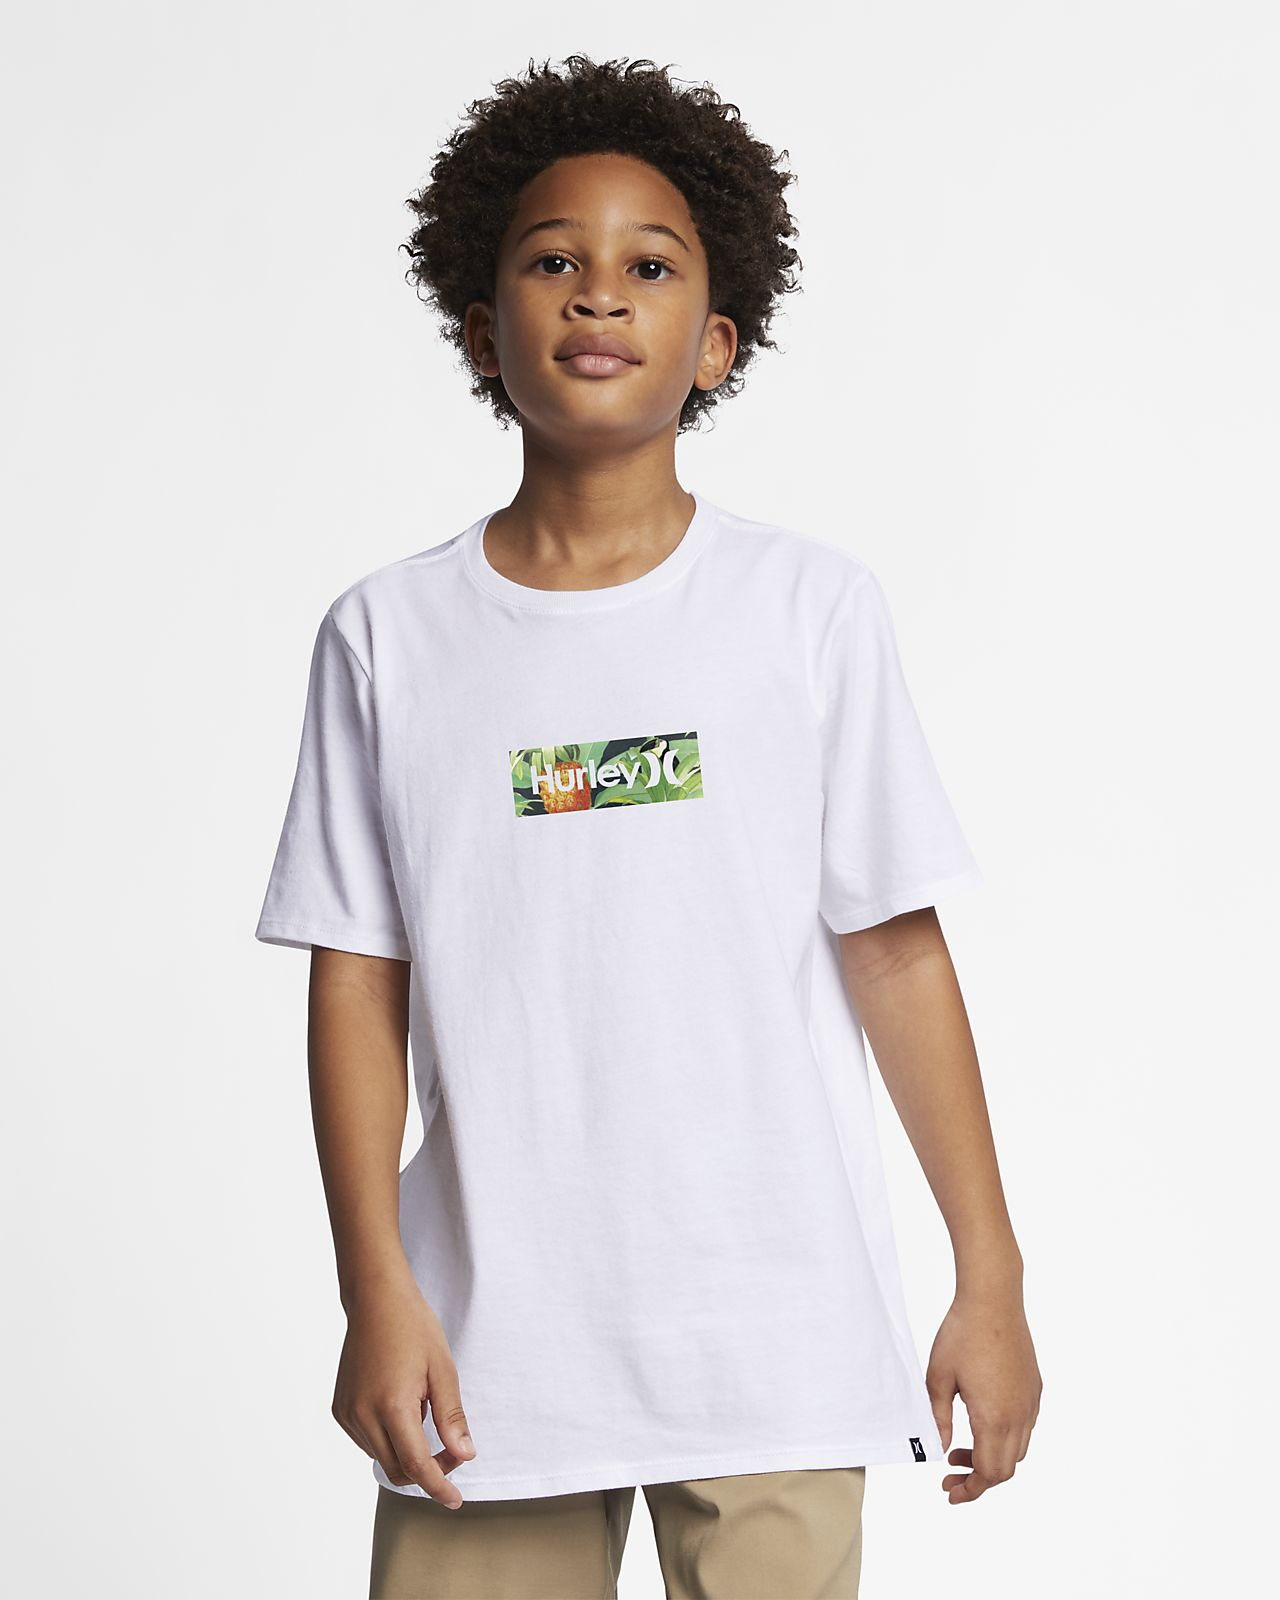 Hurley Premium One And Only Costa Rica Boys' T-Shirt